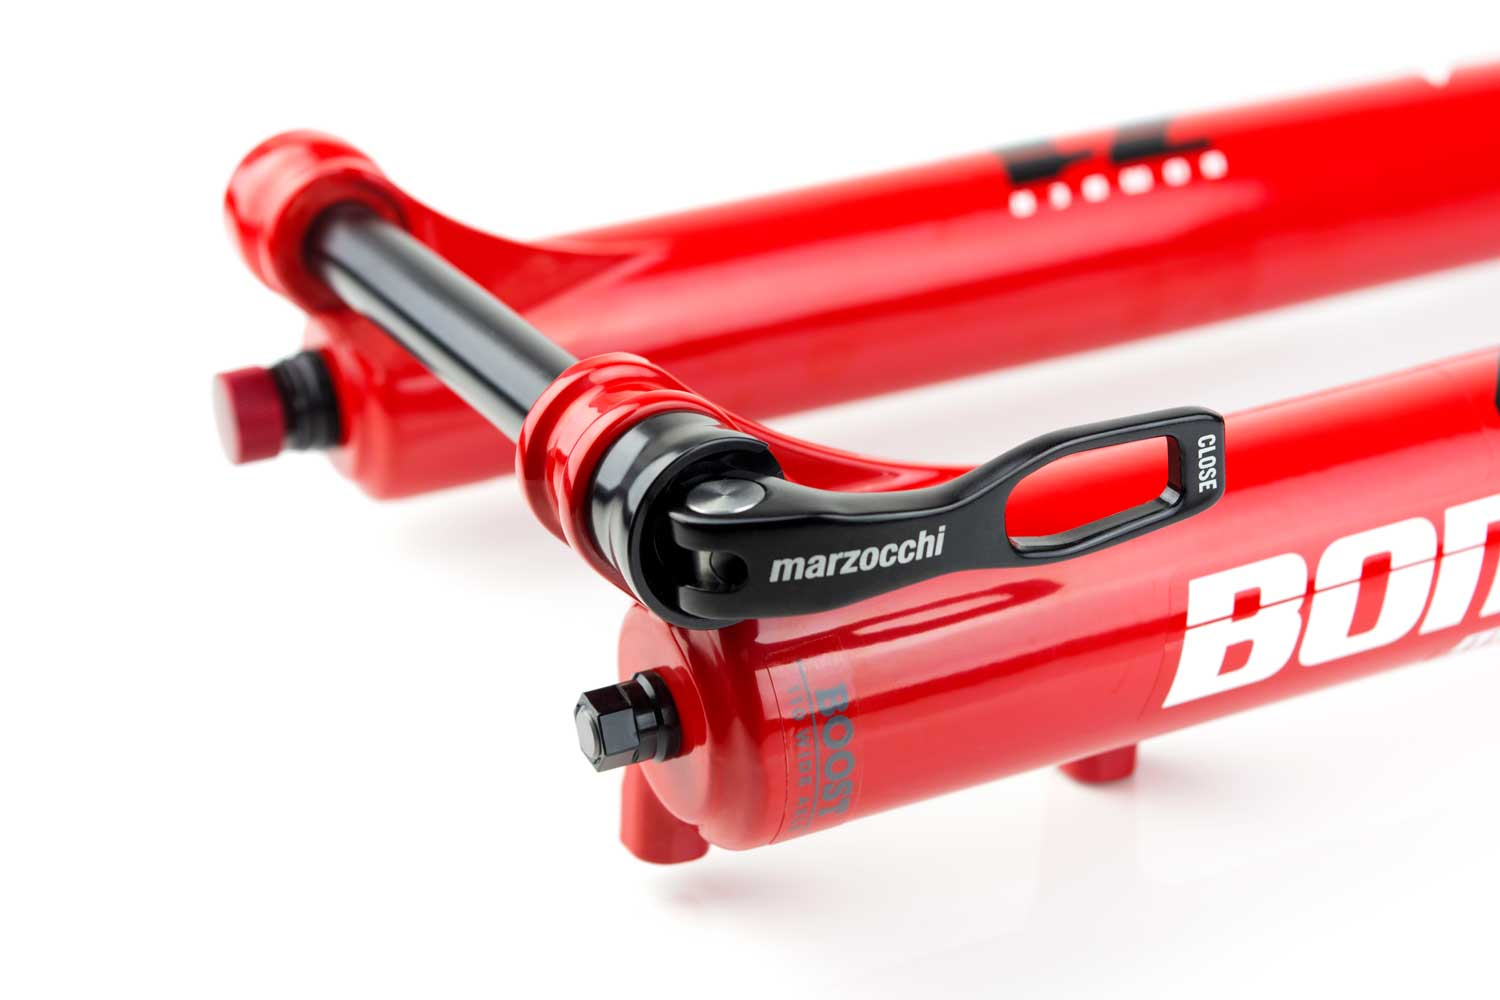 MARZOCCHI LAUNCHES BOMBER Z1 COIL FORK & COIL CONVERSION KIT